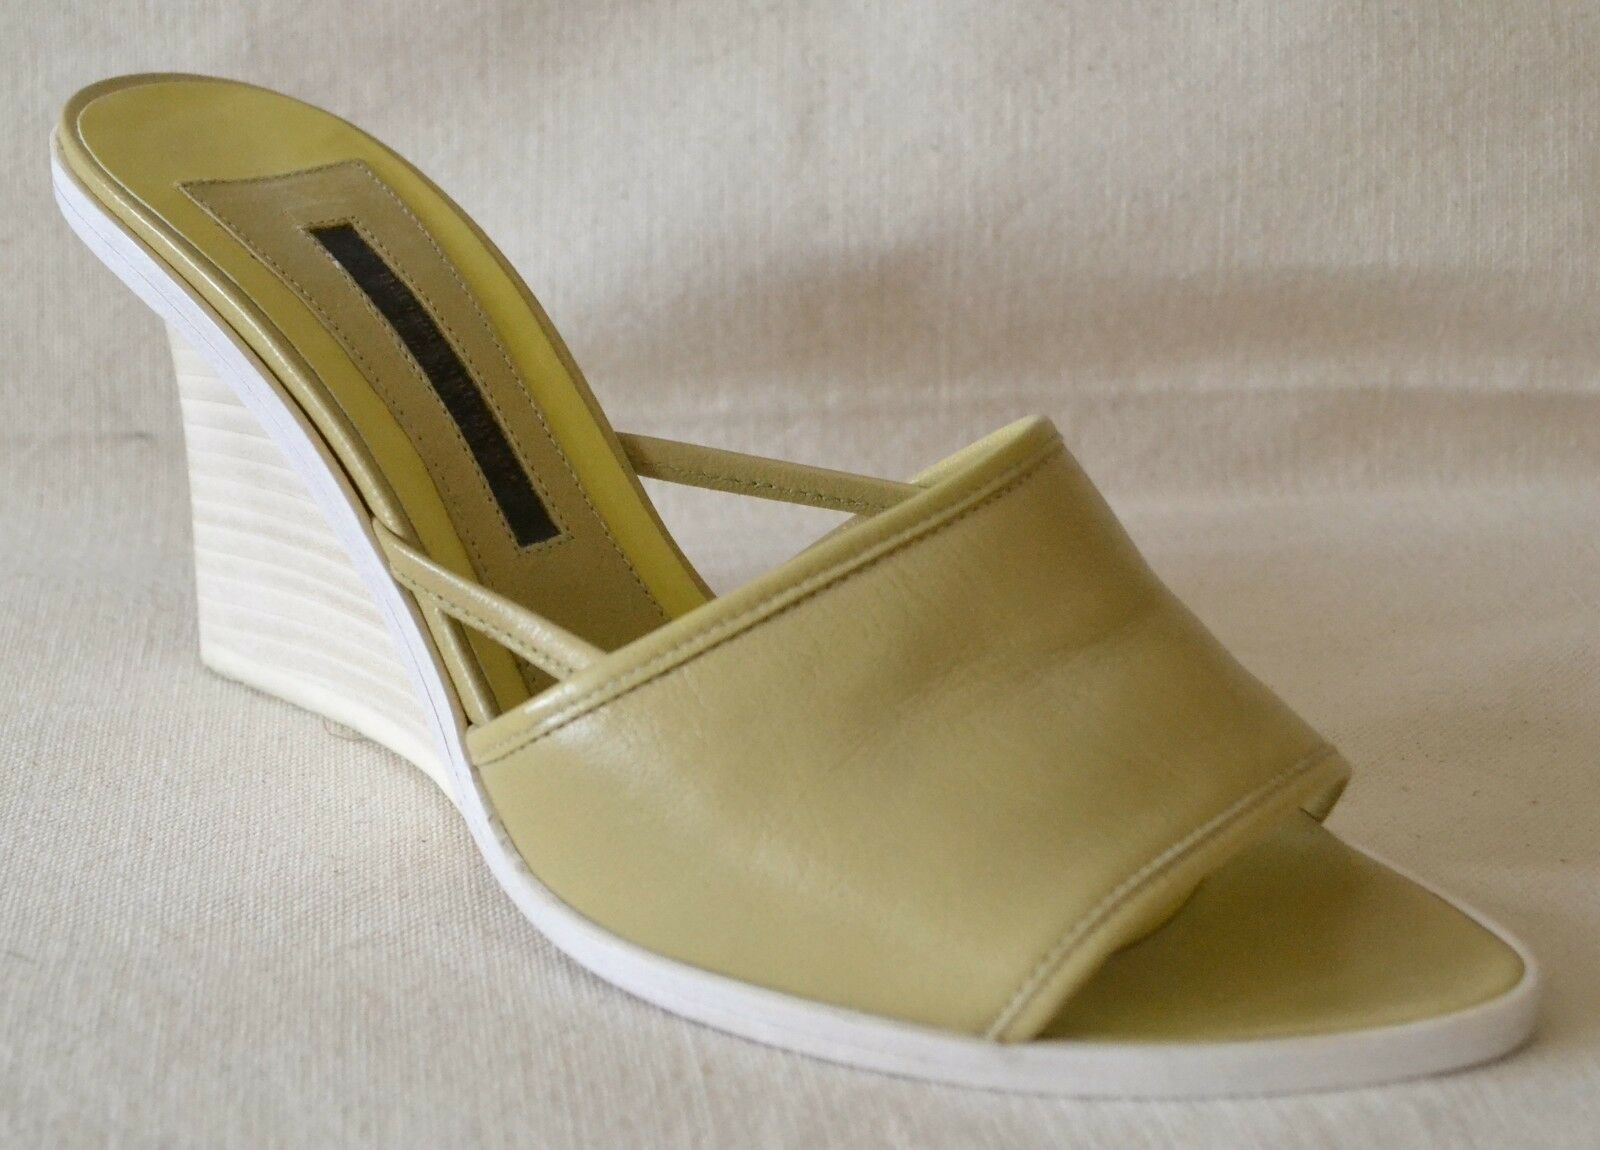 Narciso Rodriguez Beige Leather Wedge Slide shoes Size 36 - US 6